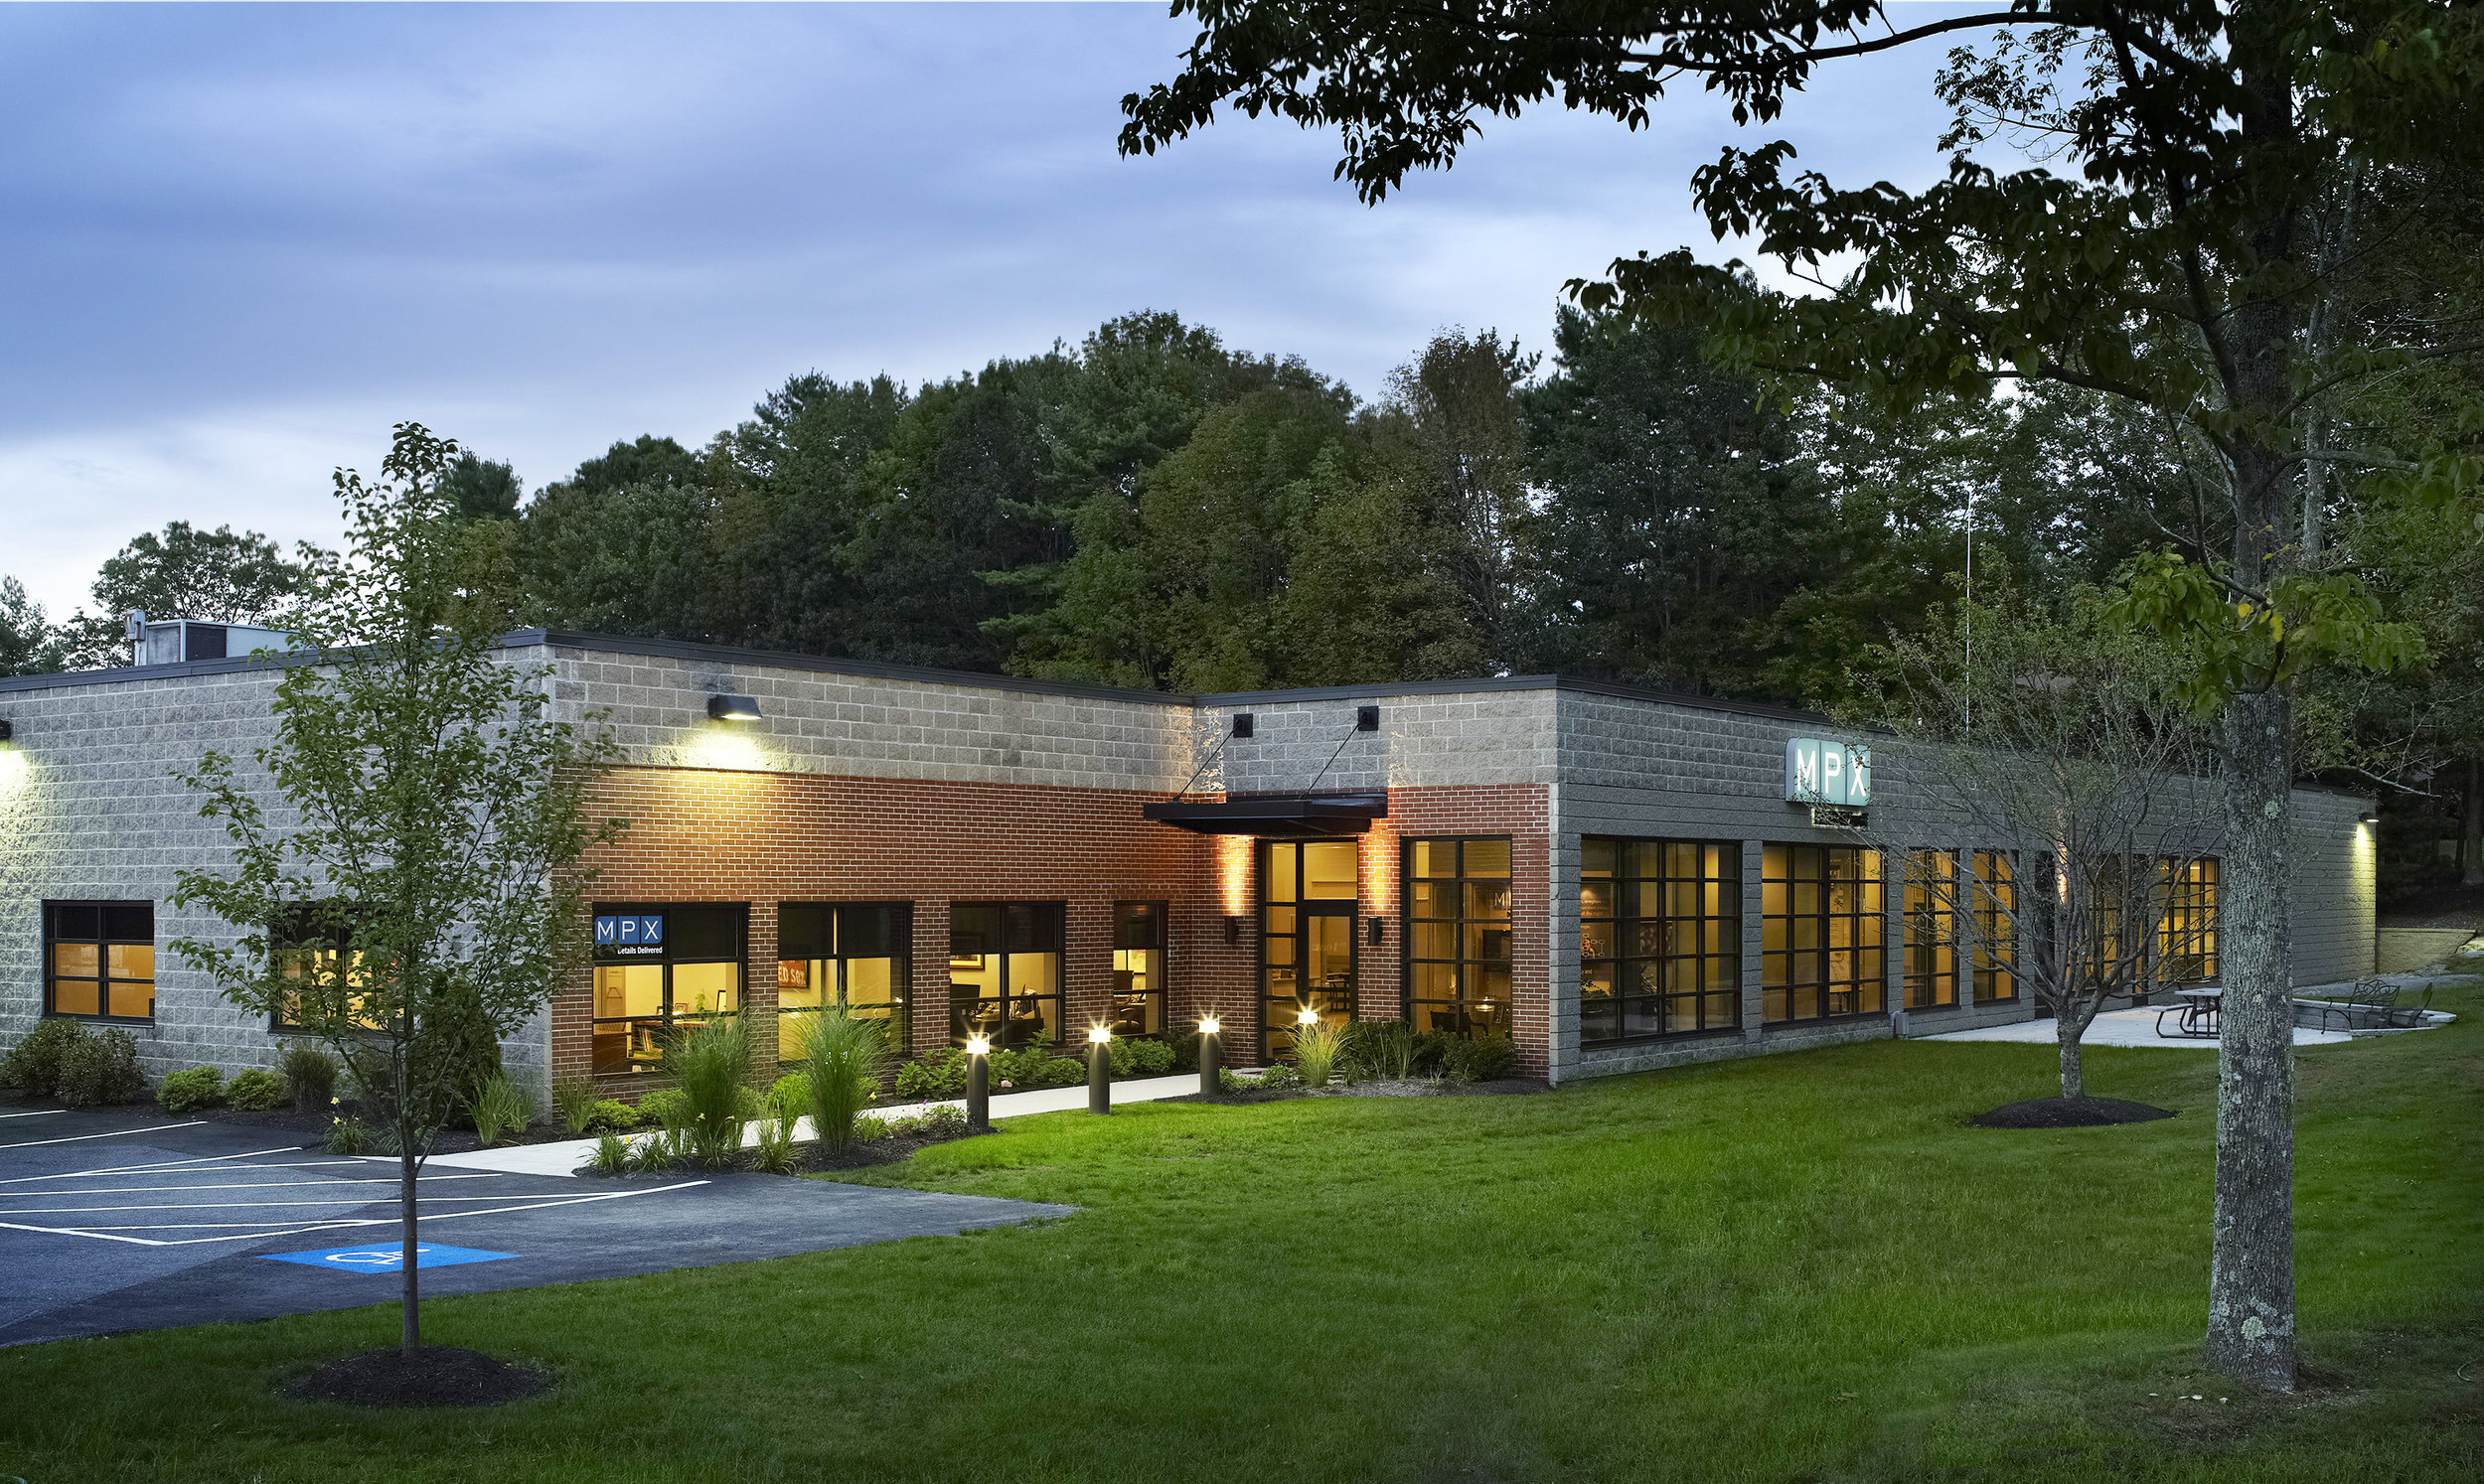 MPX Corporate Headquarters Exterior by HDS Architecture